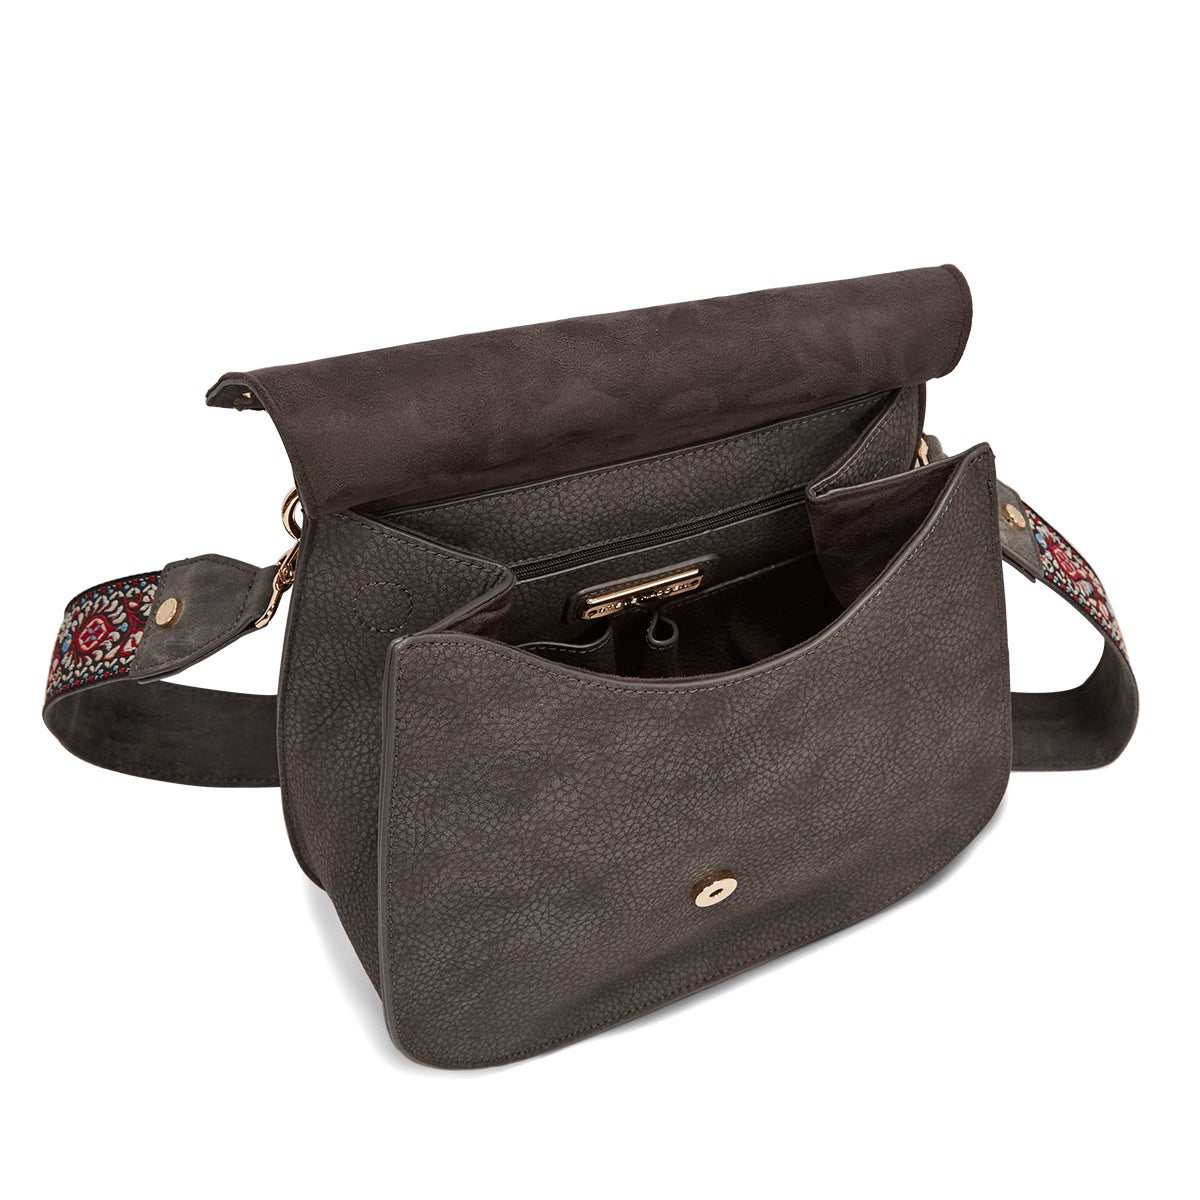 Lds BSwiss charcoal tassel saddle bag